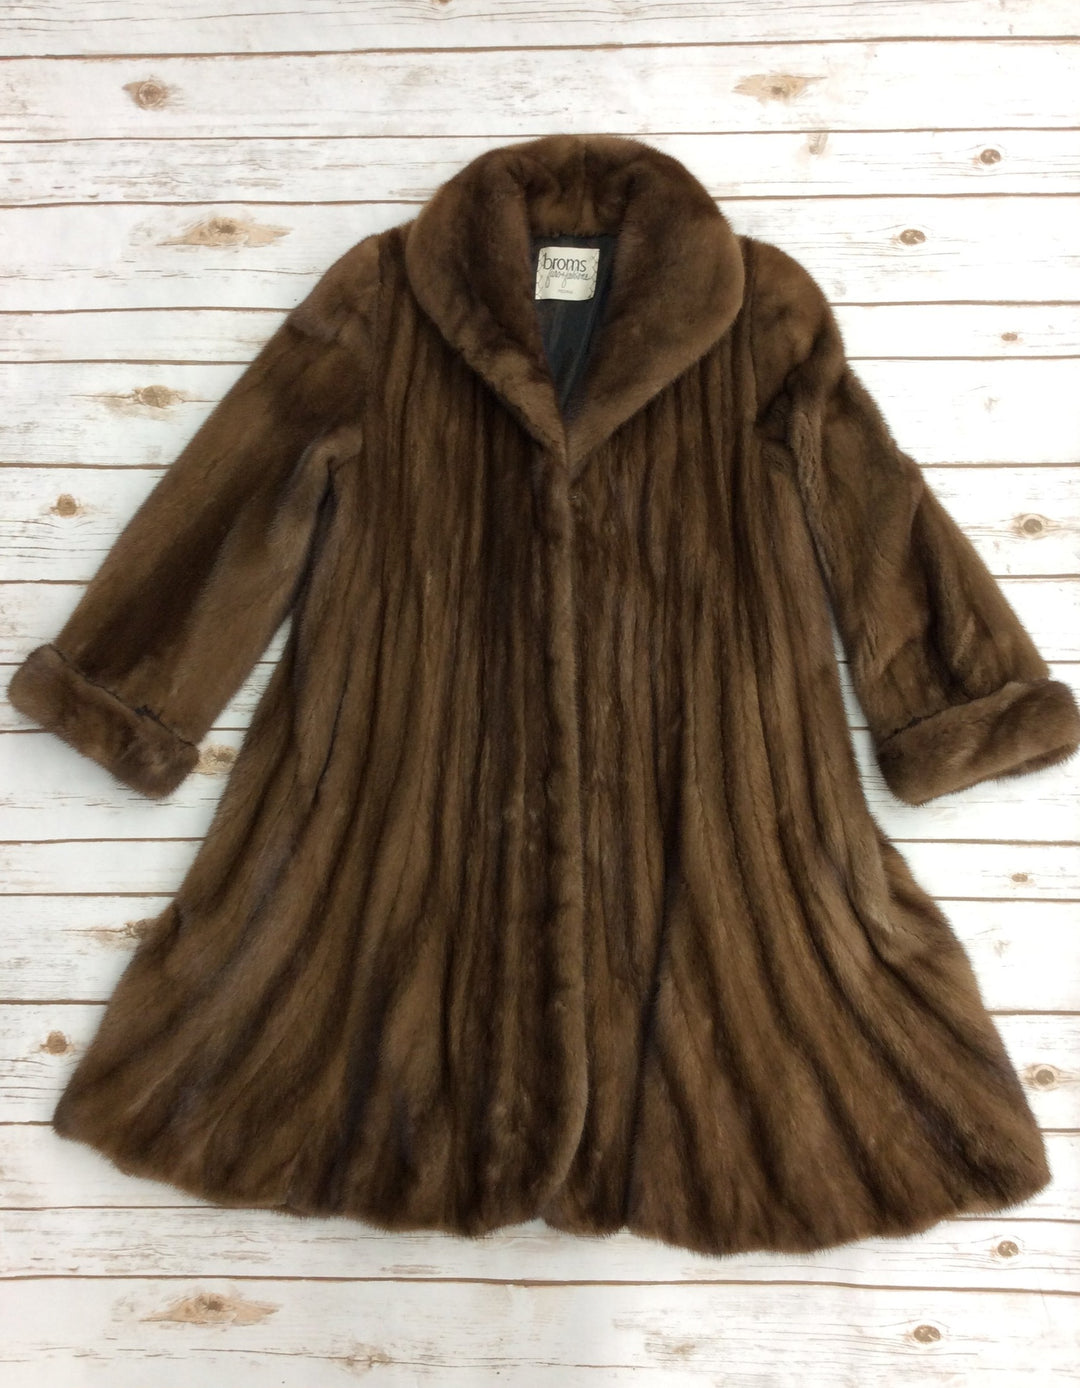 Primary Photo - BRAND: CMA <BR>STYLE: COAT LONG <BR>COLOR: BROWN <BR>OTHER INFO: BROMS - SIZE S-M<BR>SKU: 220-22090-7016<BR>MINK FUR COAT, EXCELLENT CONDITION, RETAILS FOR $4000